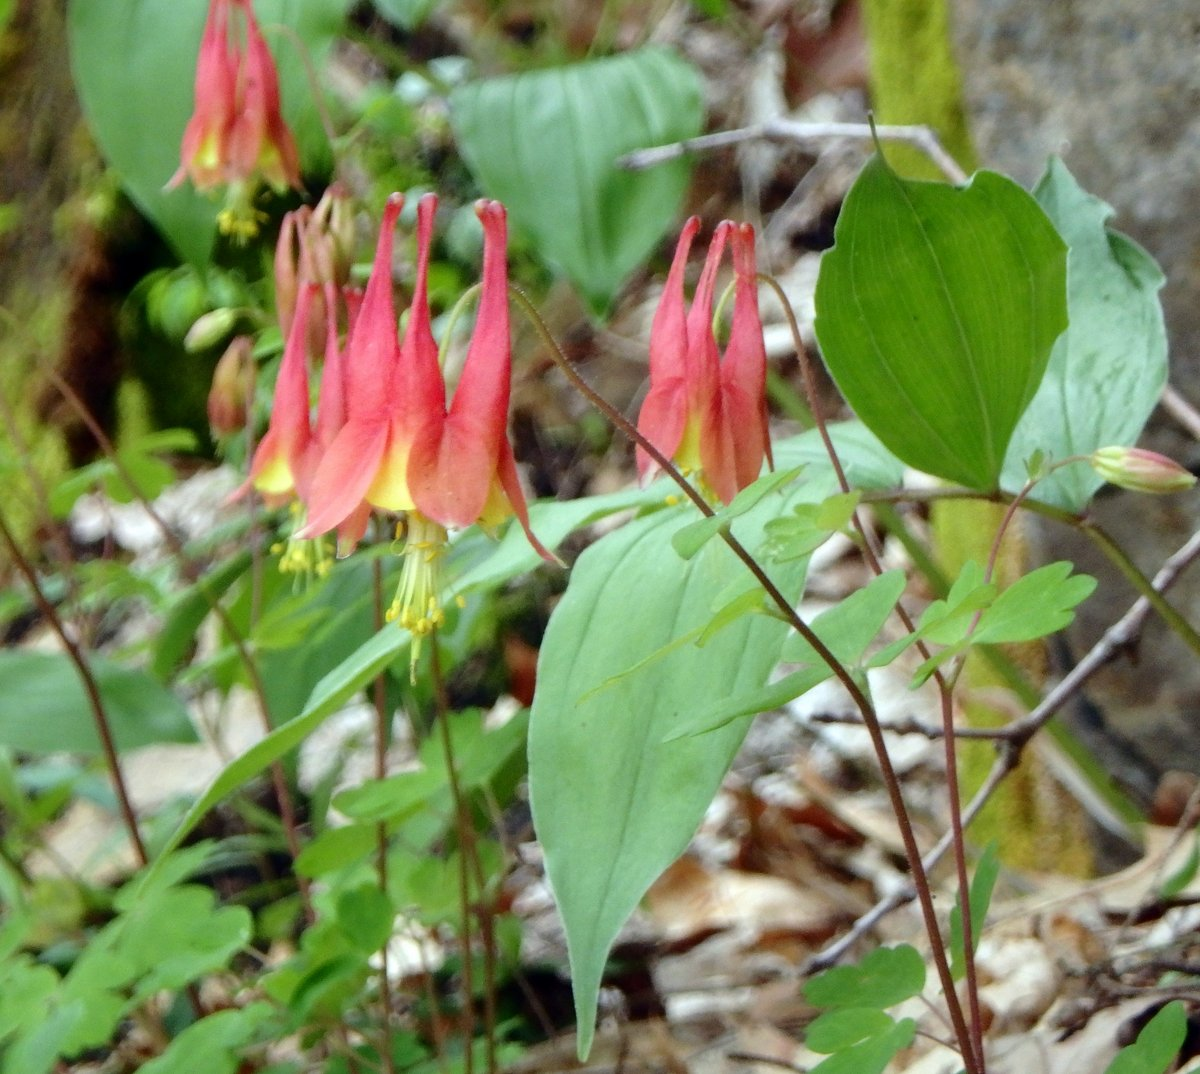 Native columbine new hampshire garden solutions i couldnt stop clicking the shutter always hoping for a better shot the wind was blowing through the canyon so i was sure every photo would be blurred izmirmasajfo